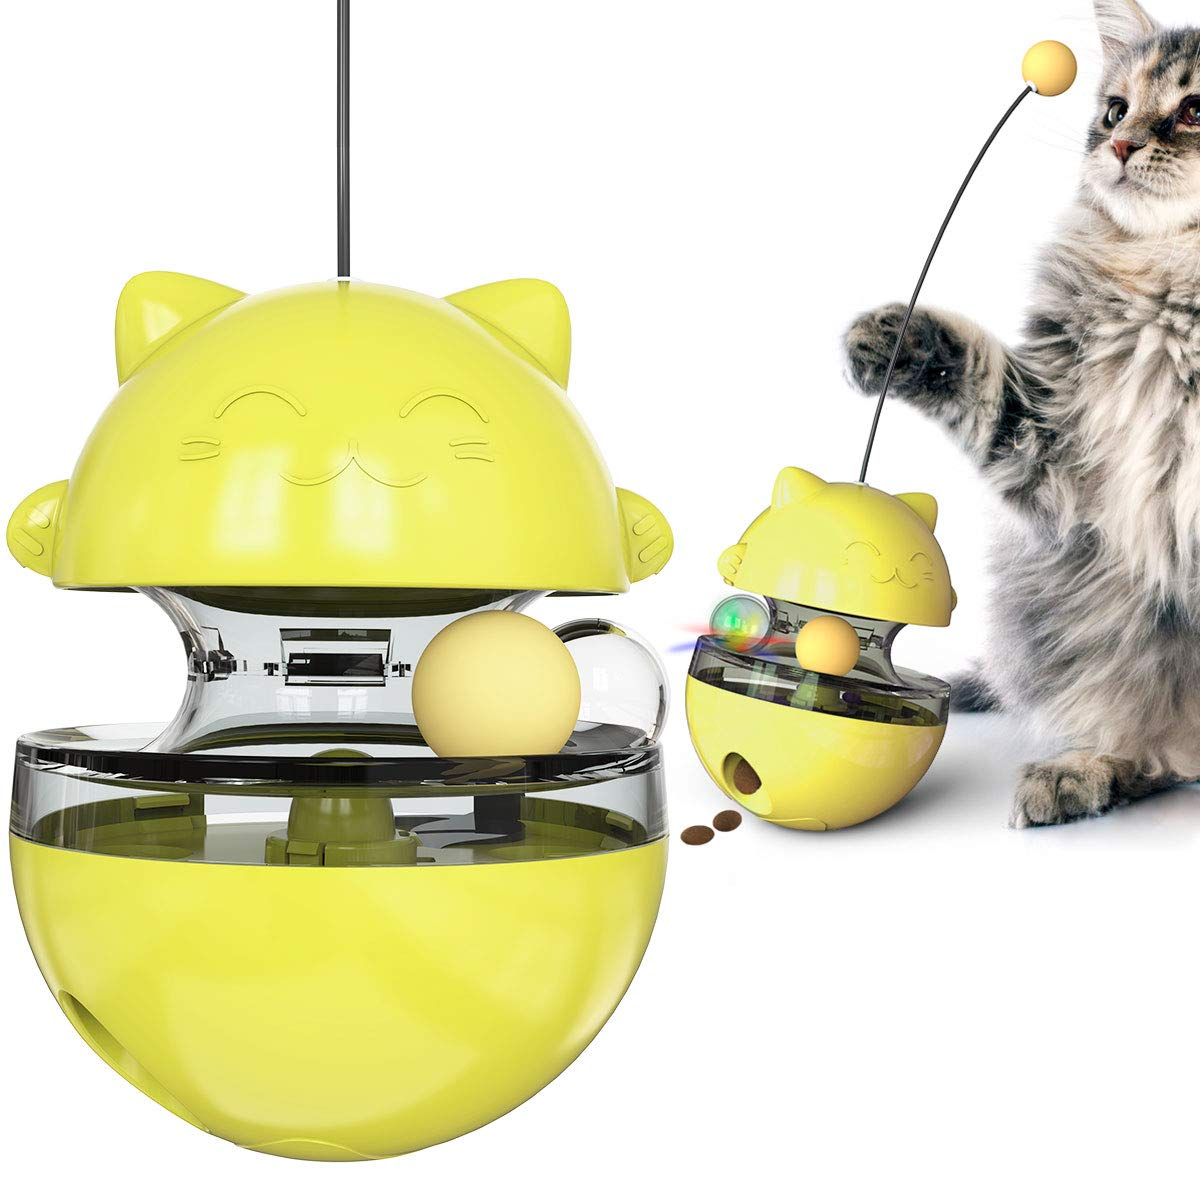 LHI Shakes The cat Toy to Make The cat take a Selfie Freely, so as to Relieve The Boring Toy Without Leaking The Ball